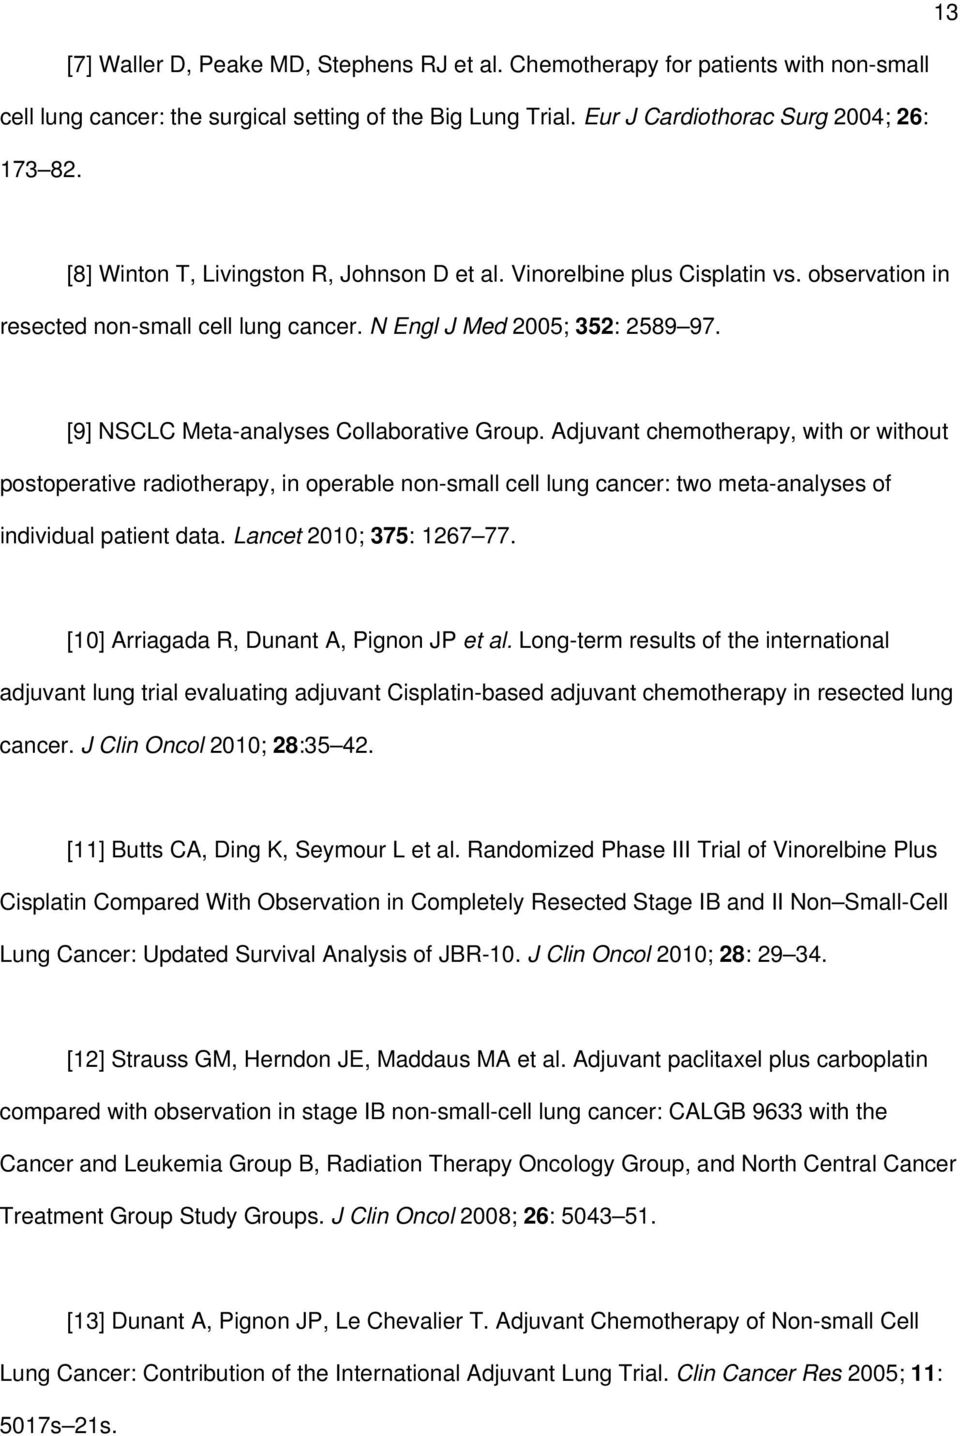 [9] NSCLC Meta-analyses Collaborative Group. Adjuvant chemotherapy, with or without postoperative radiotherapy, in operable non-small cell lung cancer: two meta-analyses of individual patient data.